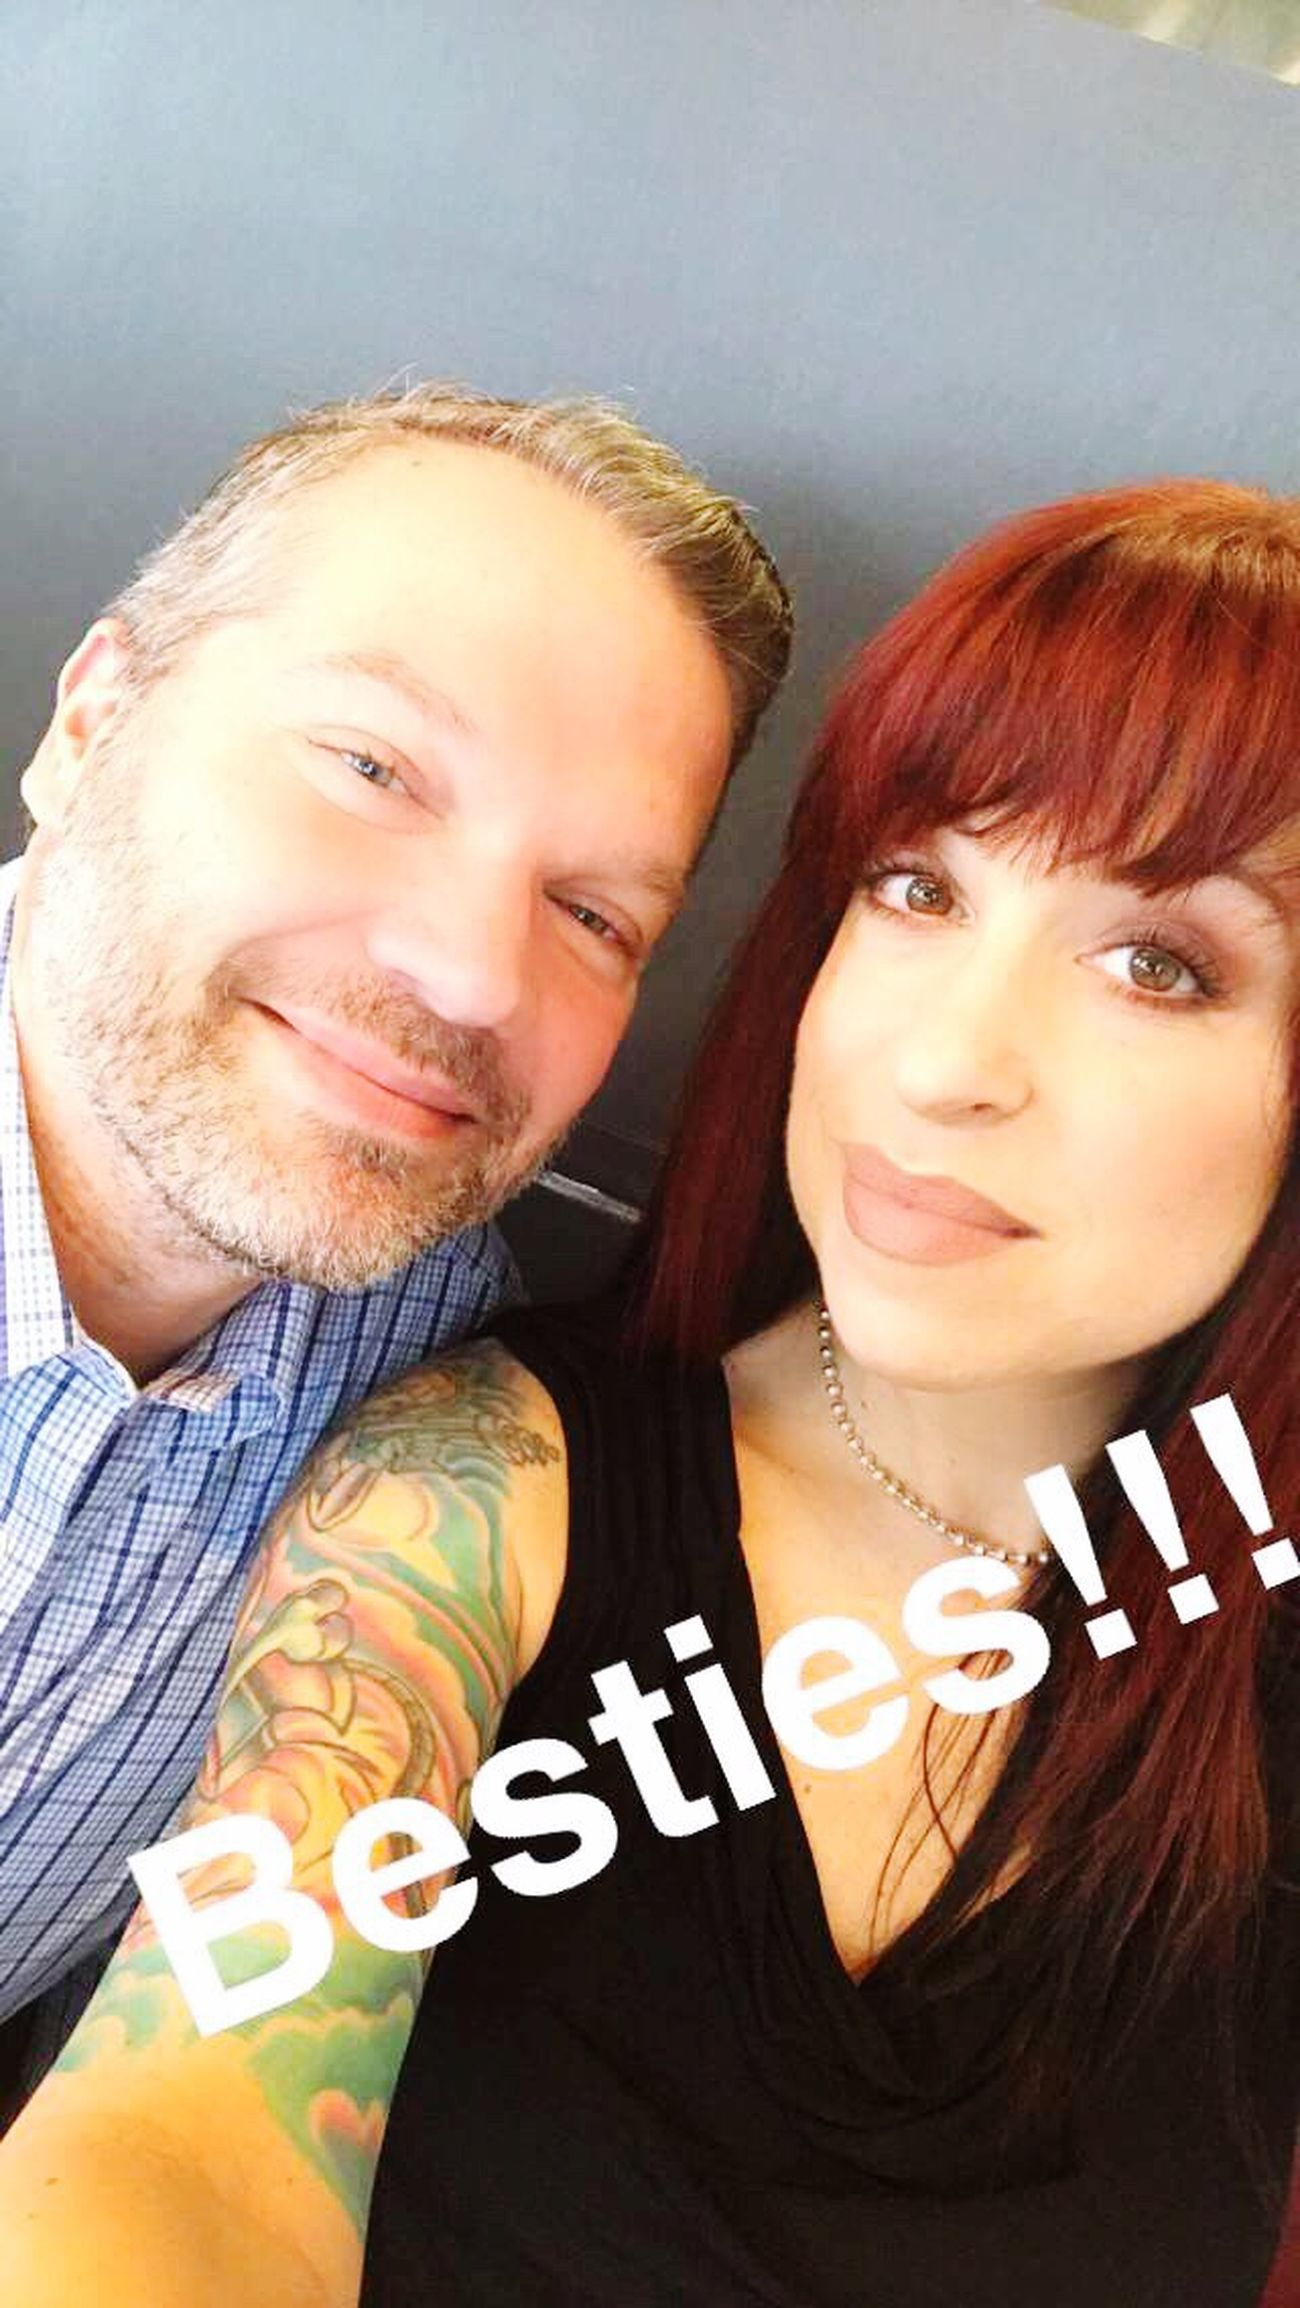 Spending a few days with my BFF in Chicago!!! Chicago ChiTown Drunk Sexygirl ThatsMe Two People Togetherness Friendship Adults Only Girlswithtattoos Girls With Tattoos Womenwithink Womenwithtattoos ShowMeYourDarkSide